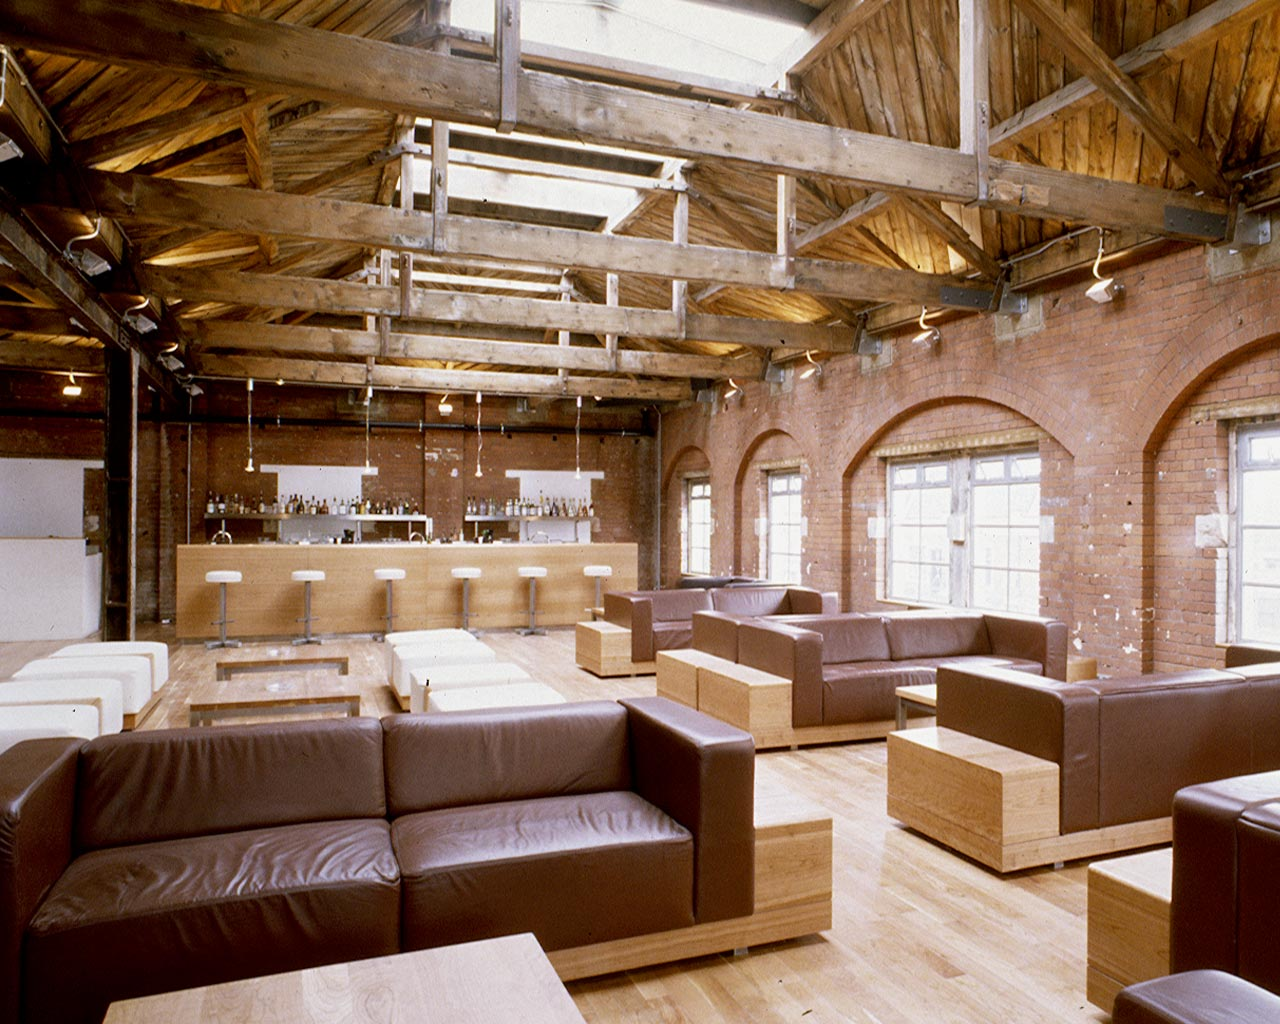 Top 13 London Venues for Tech Events – The Fetch Blog